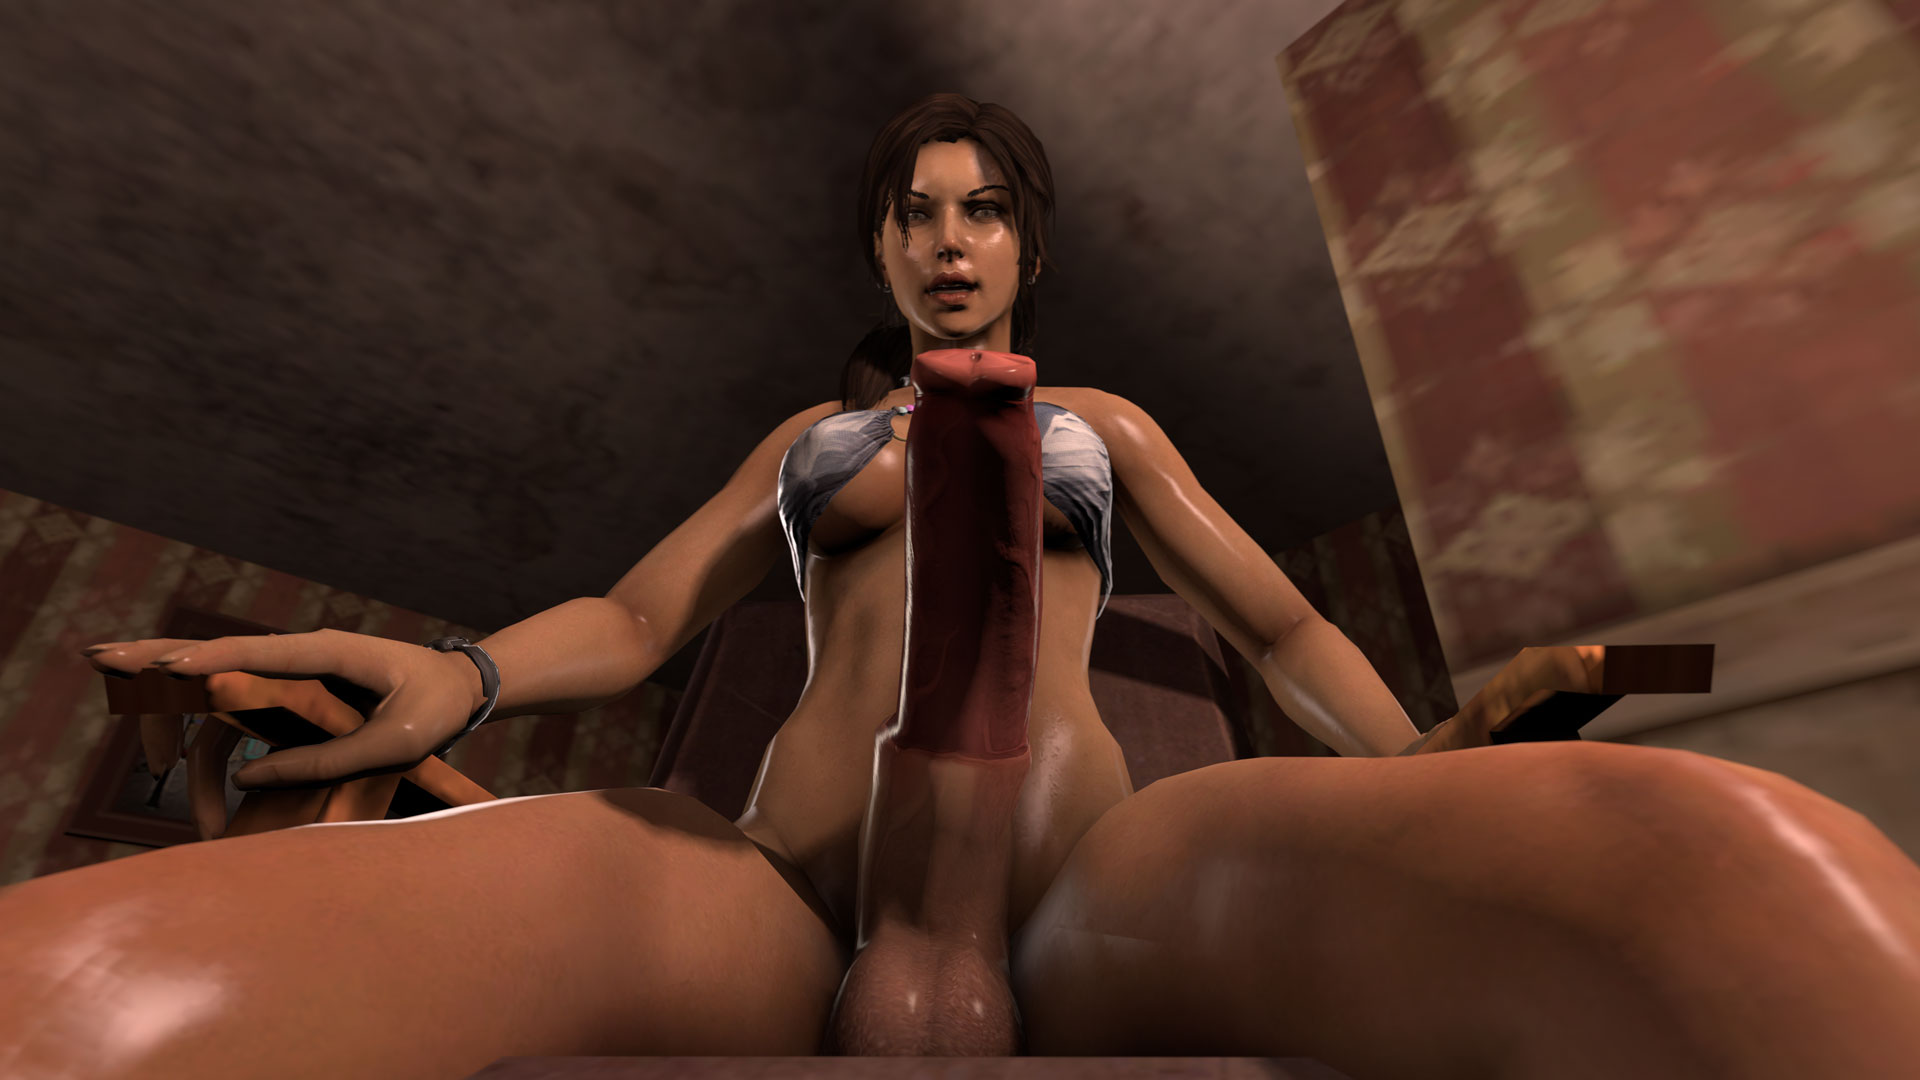 Pic tomb rider naked pictures hardcore photos